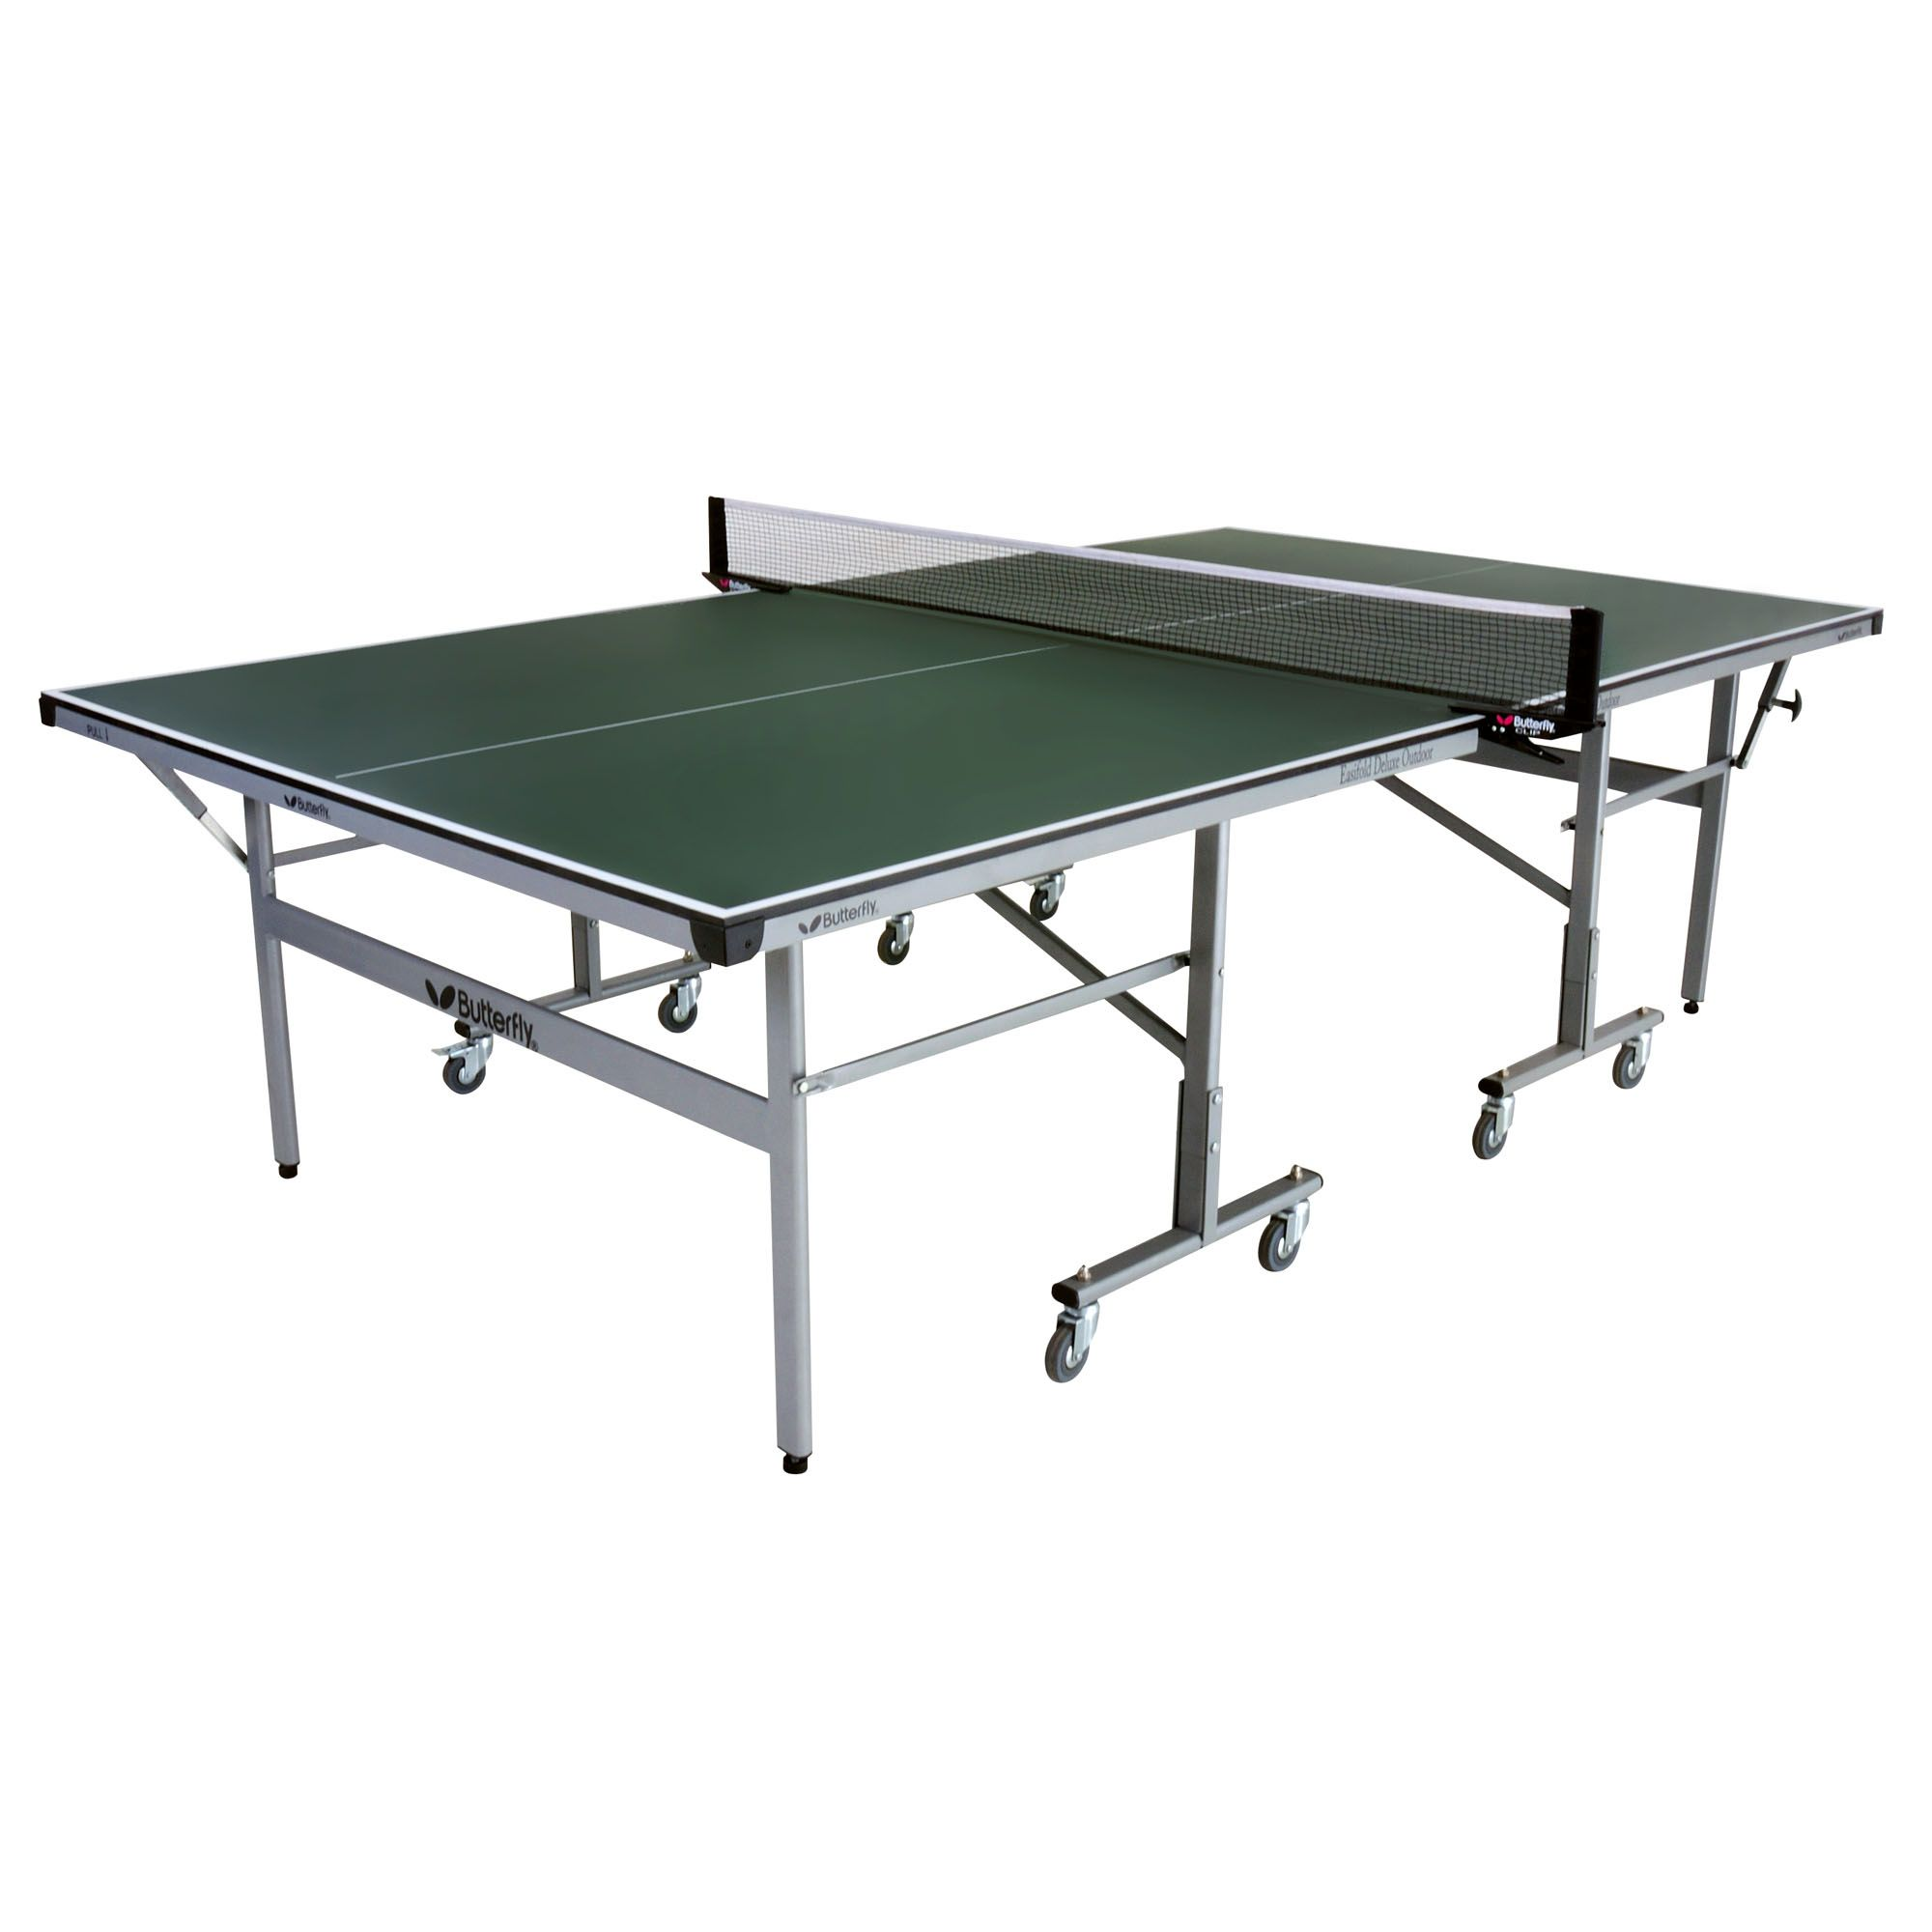 Outdoor table tennis tables best naked ladies - Weatherproof table tennis table ...